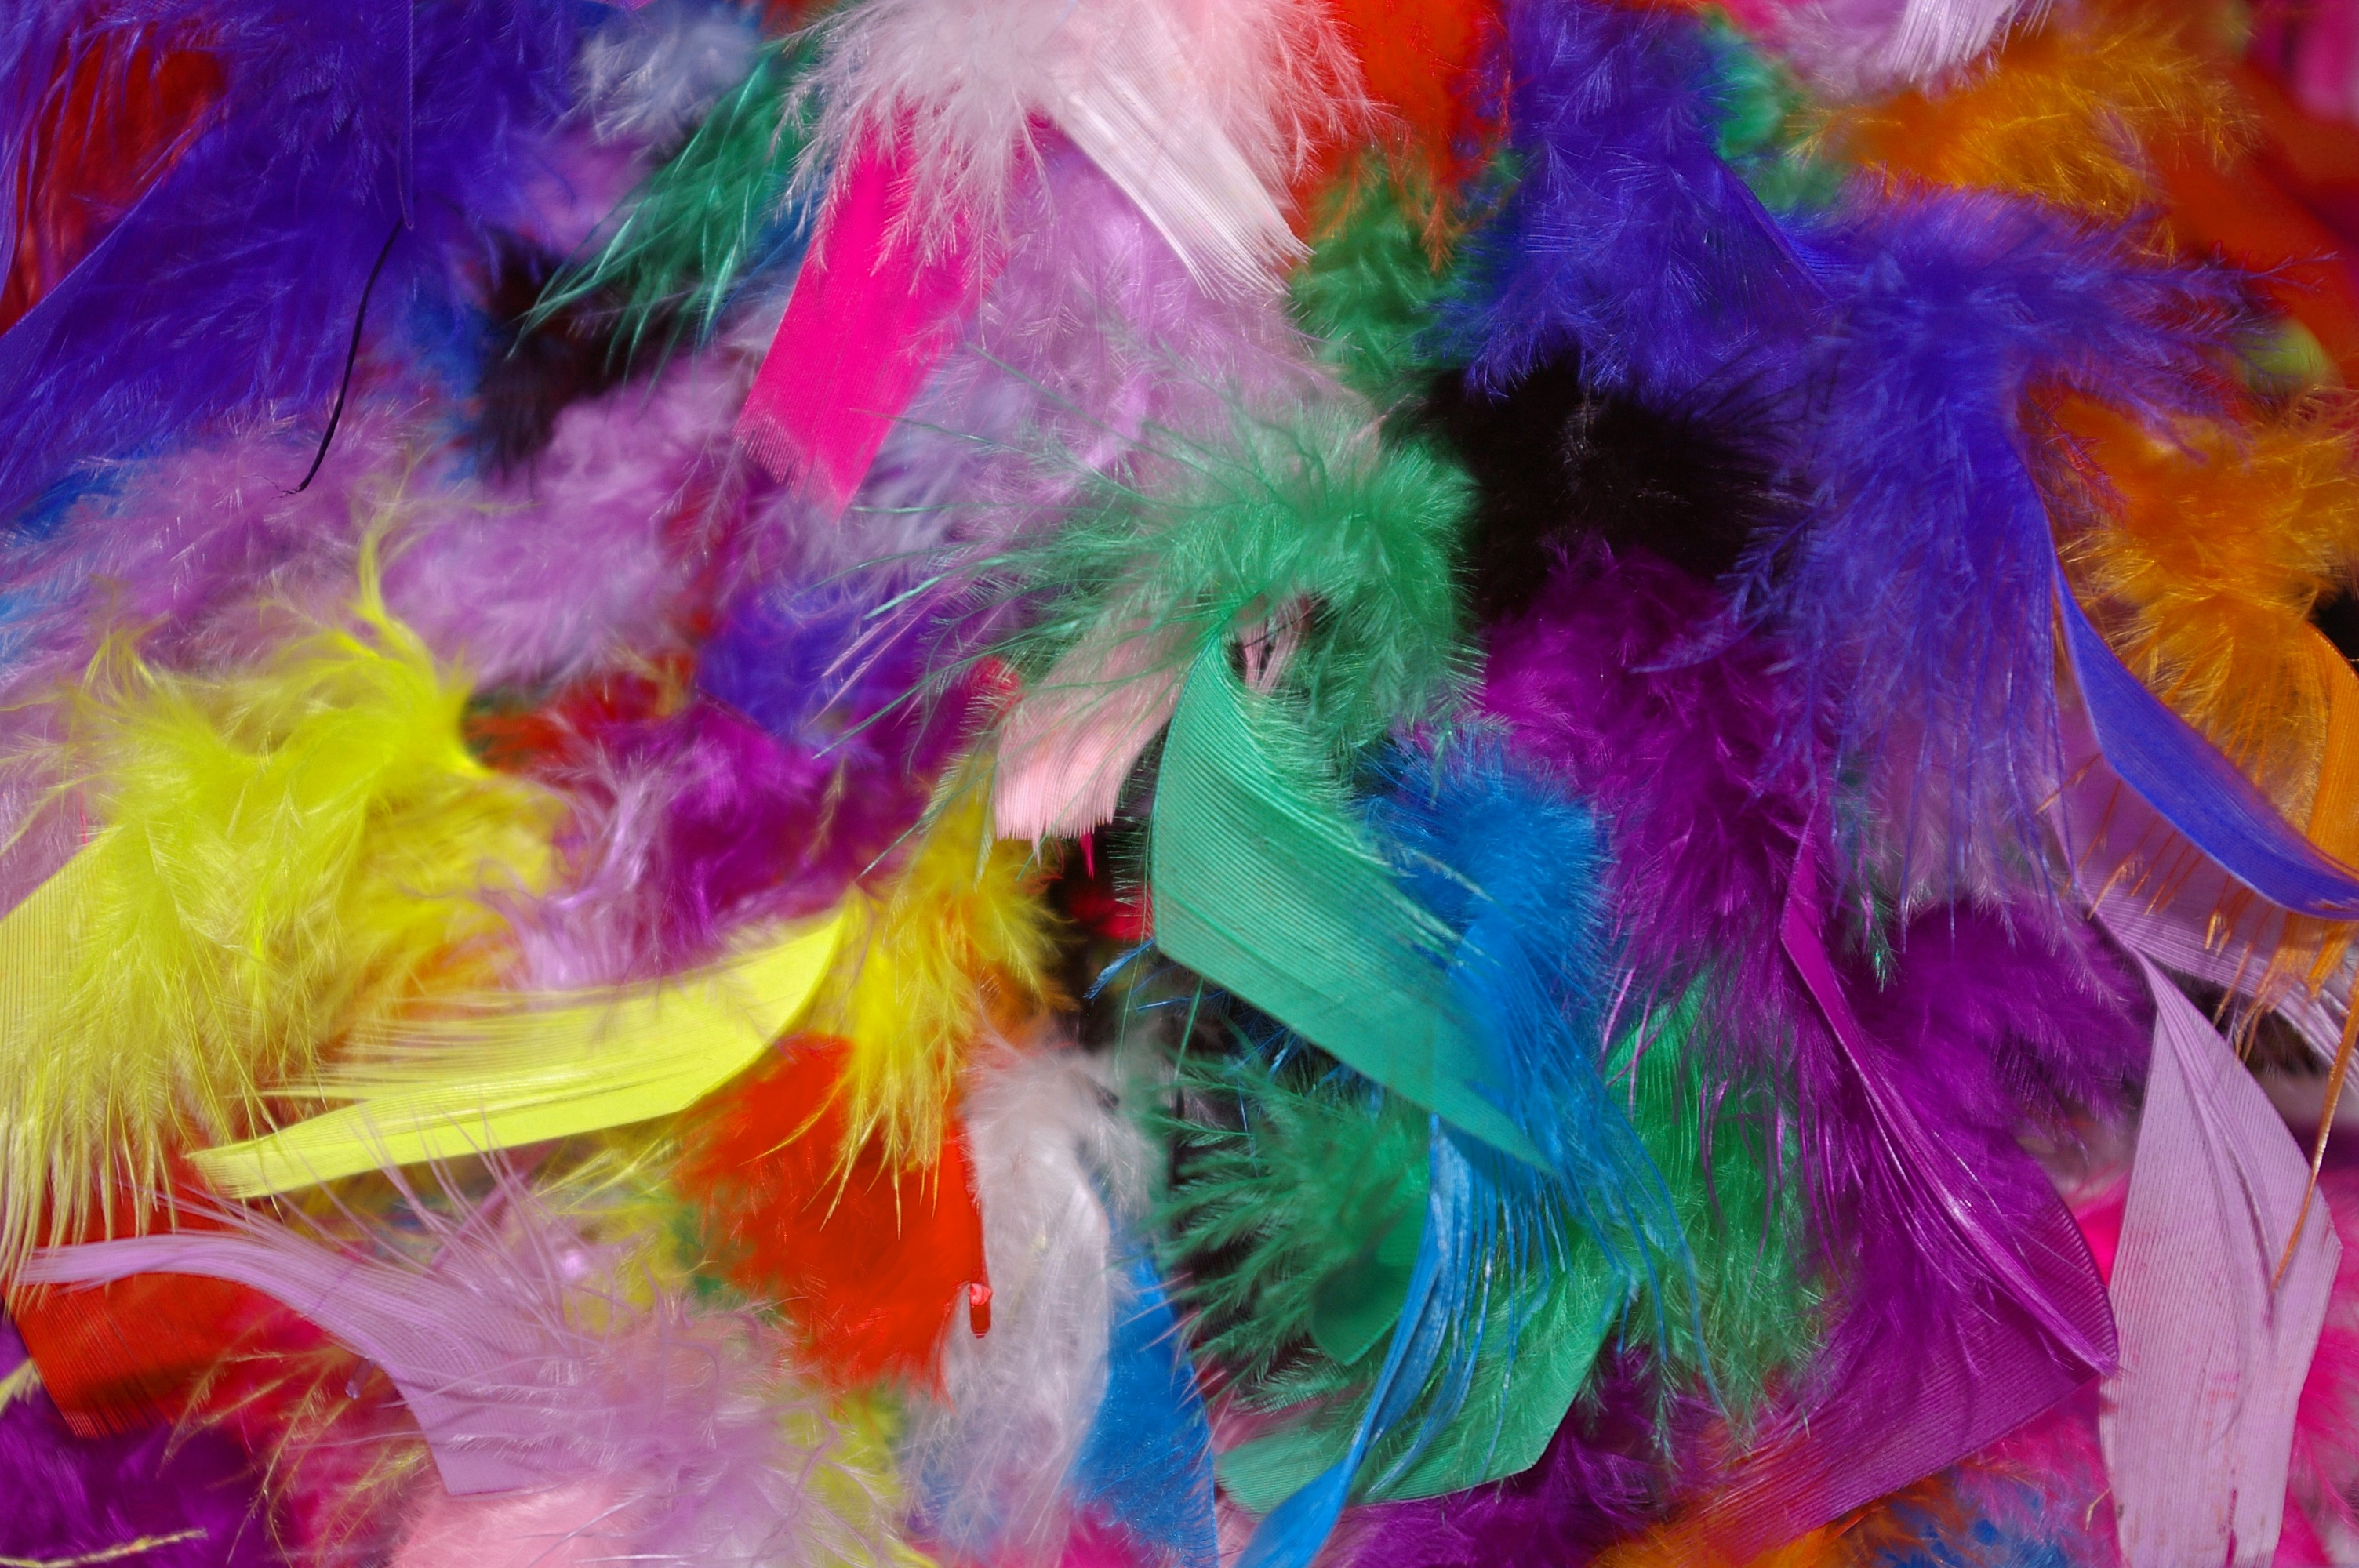 150433 download wallpaper Miscellanea, Miscellaneous, Background, Multicolored, Motley, Feather screensavers and pictures for free